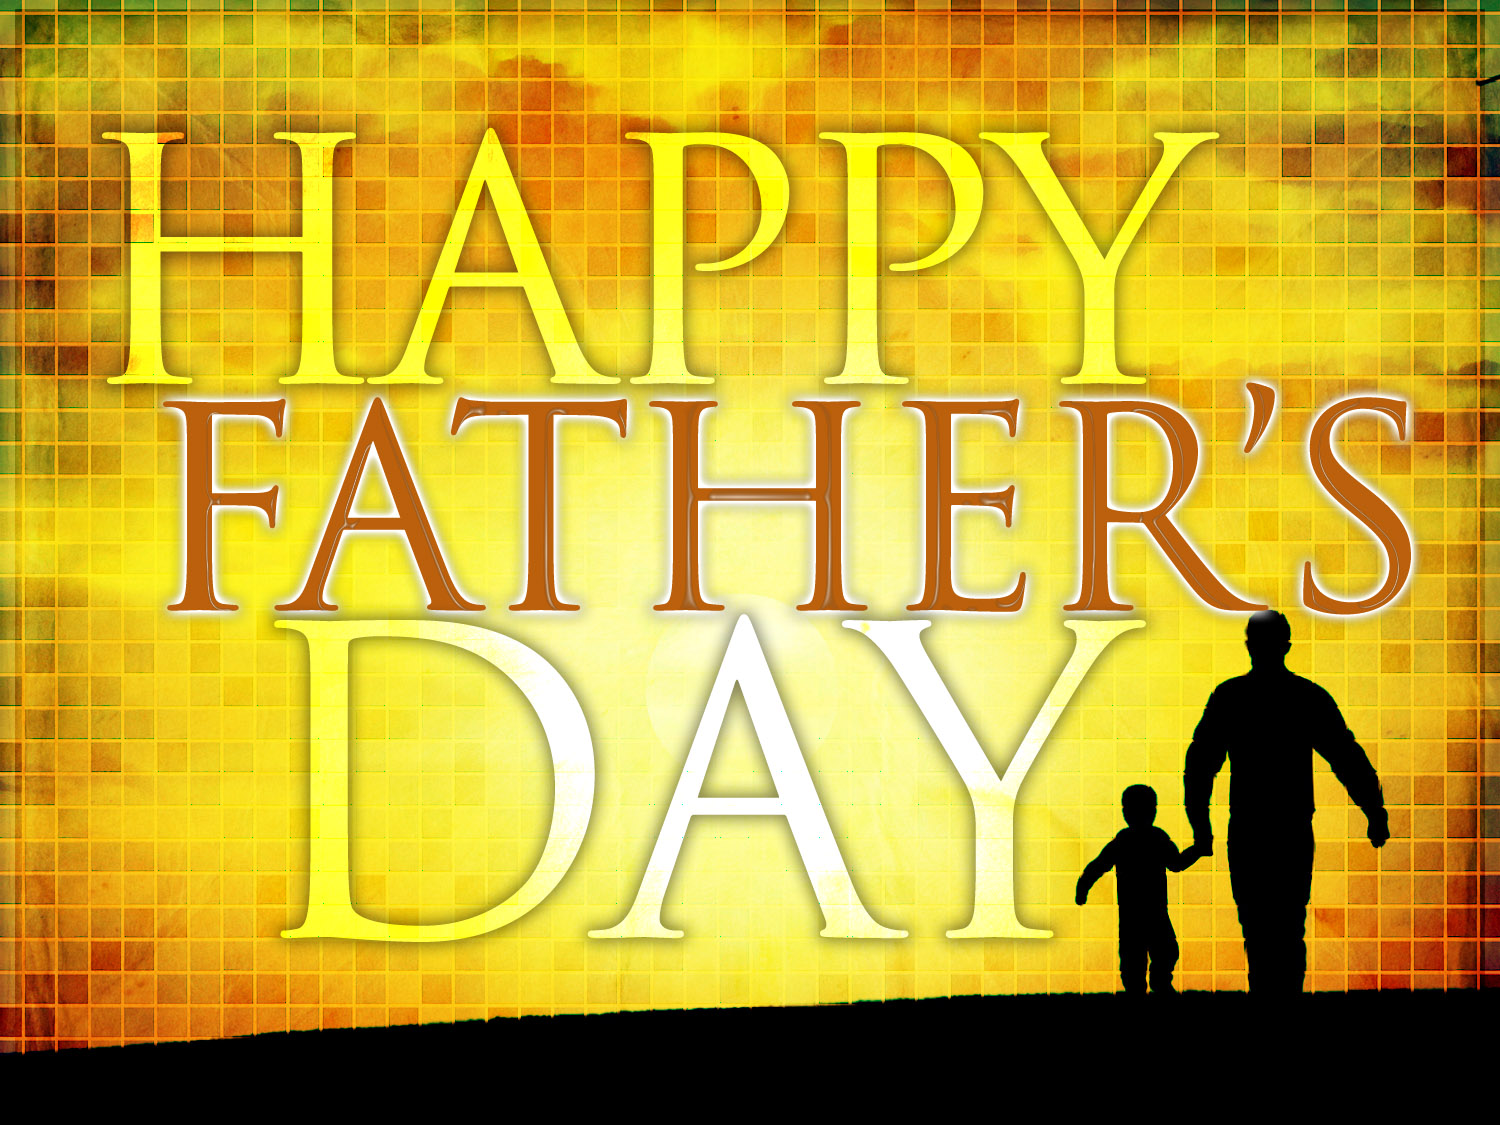 Happy Belated Father's Day